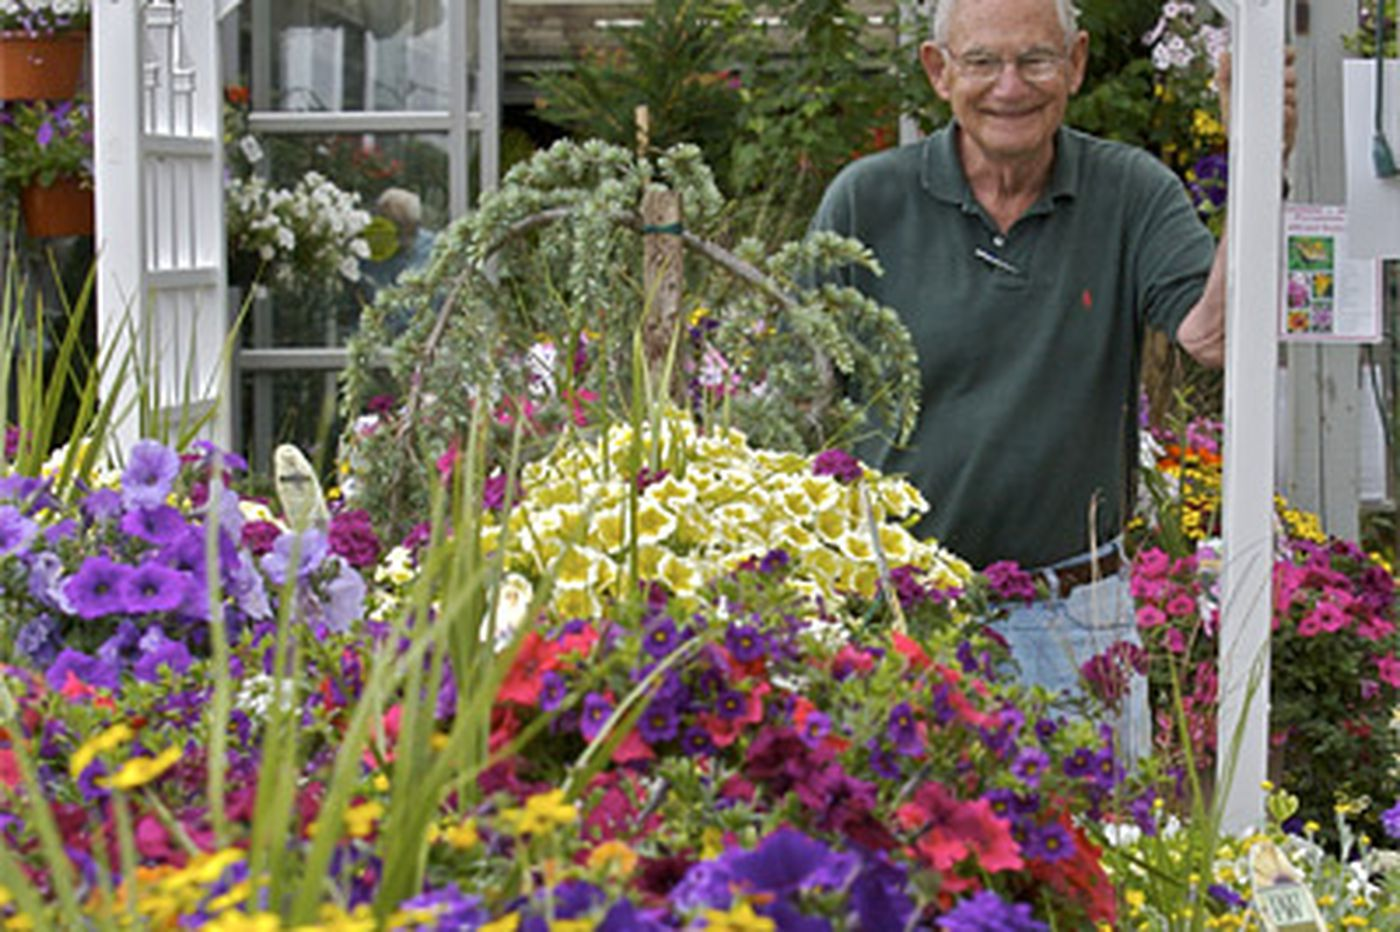 Despite recession, most garden centers thriving